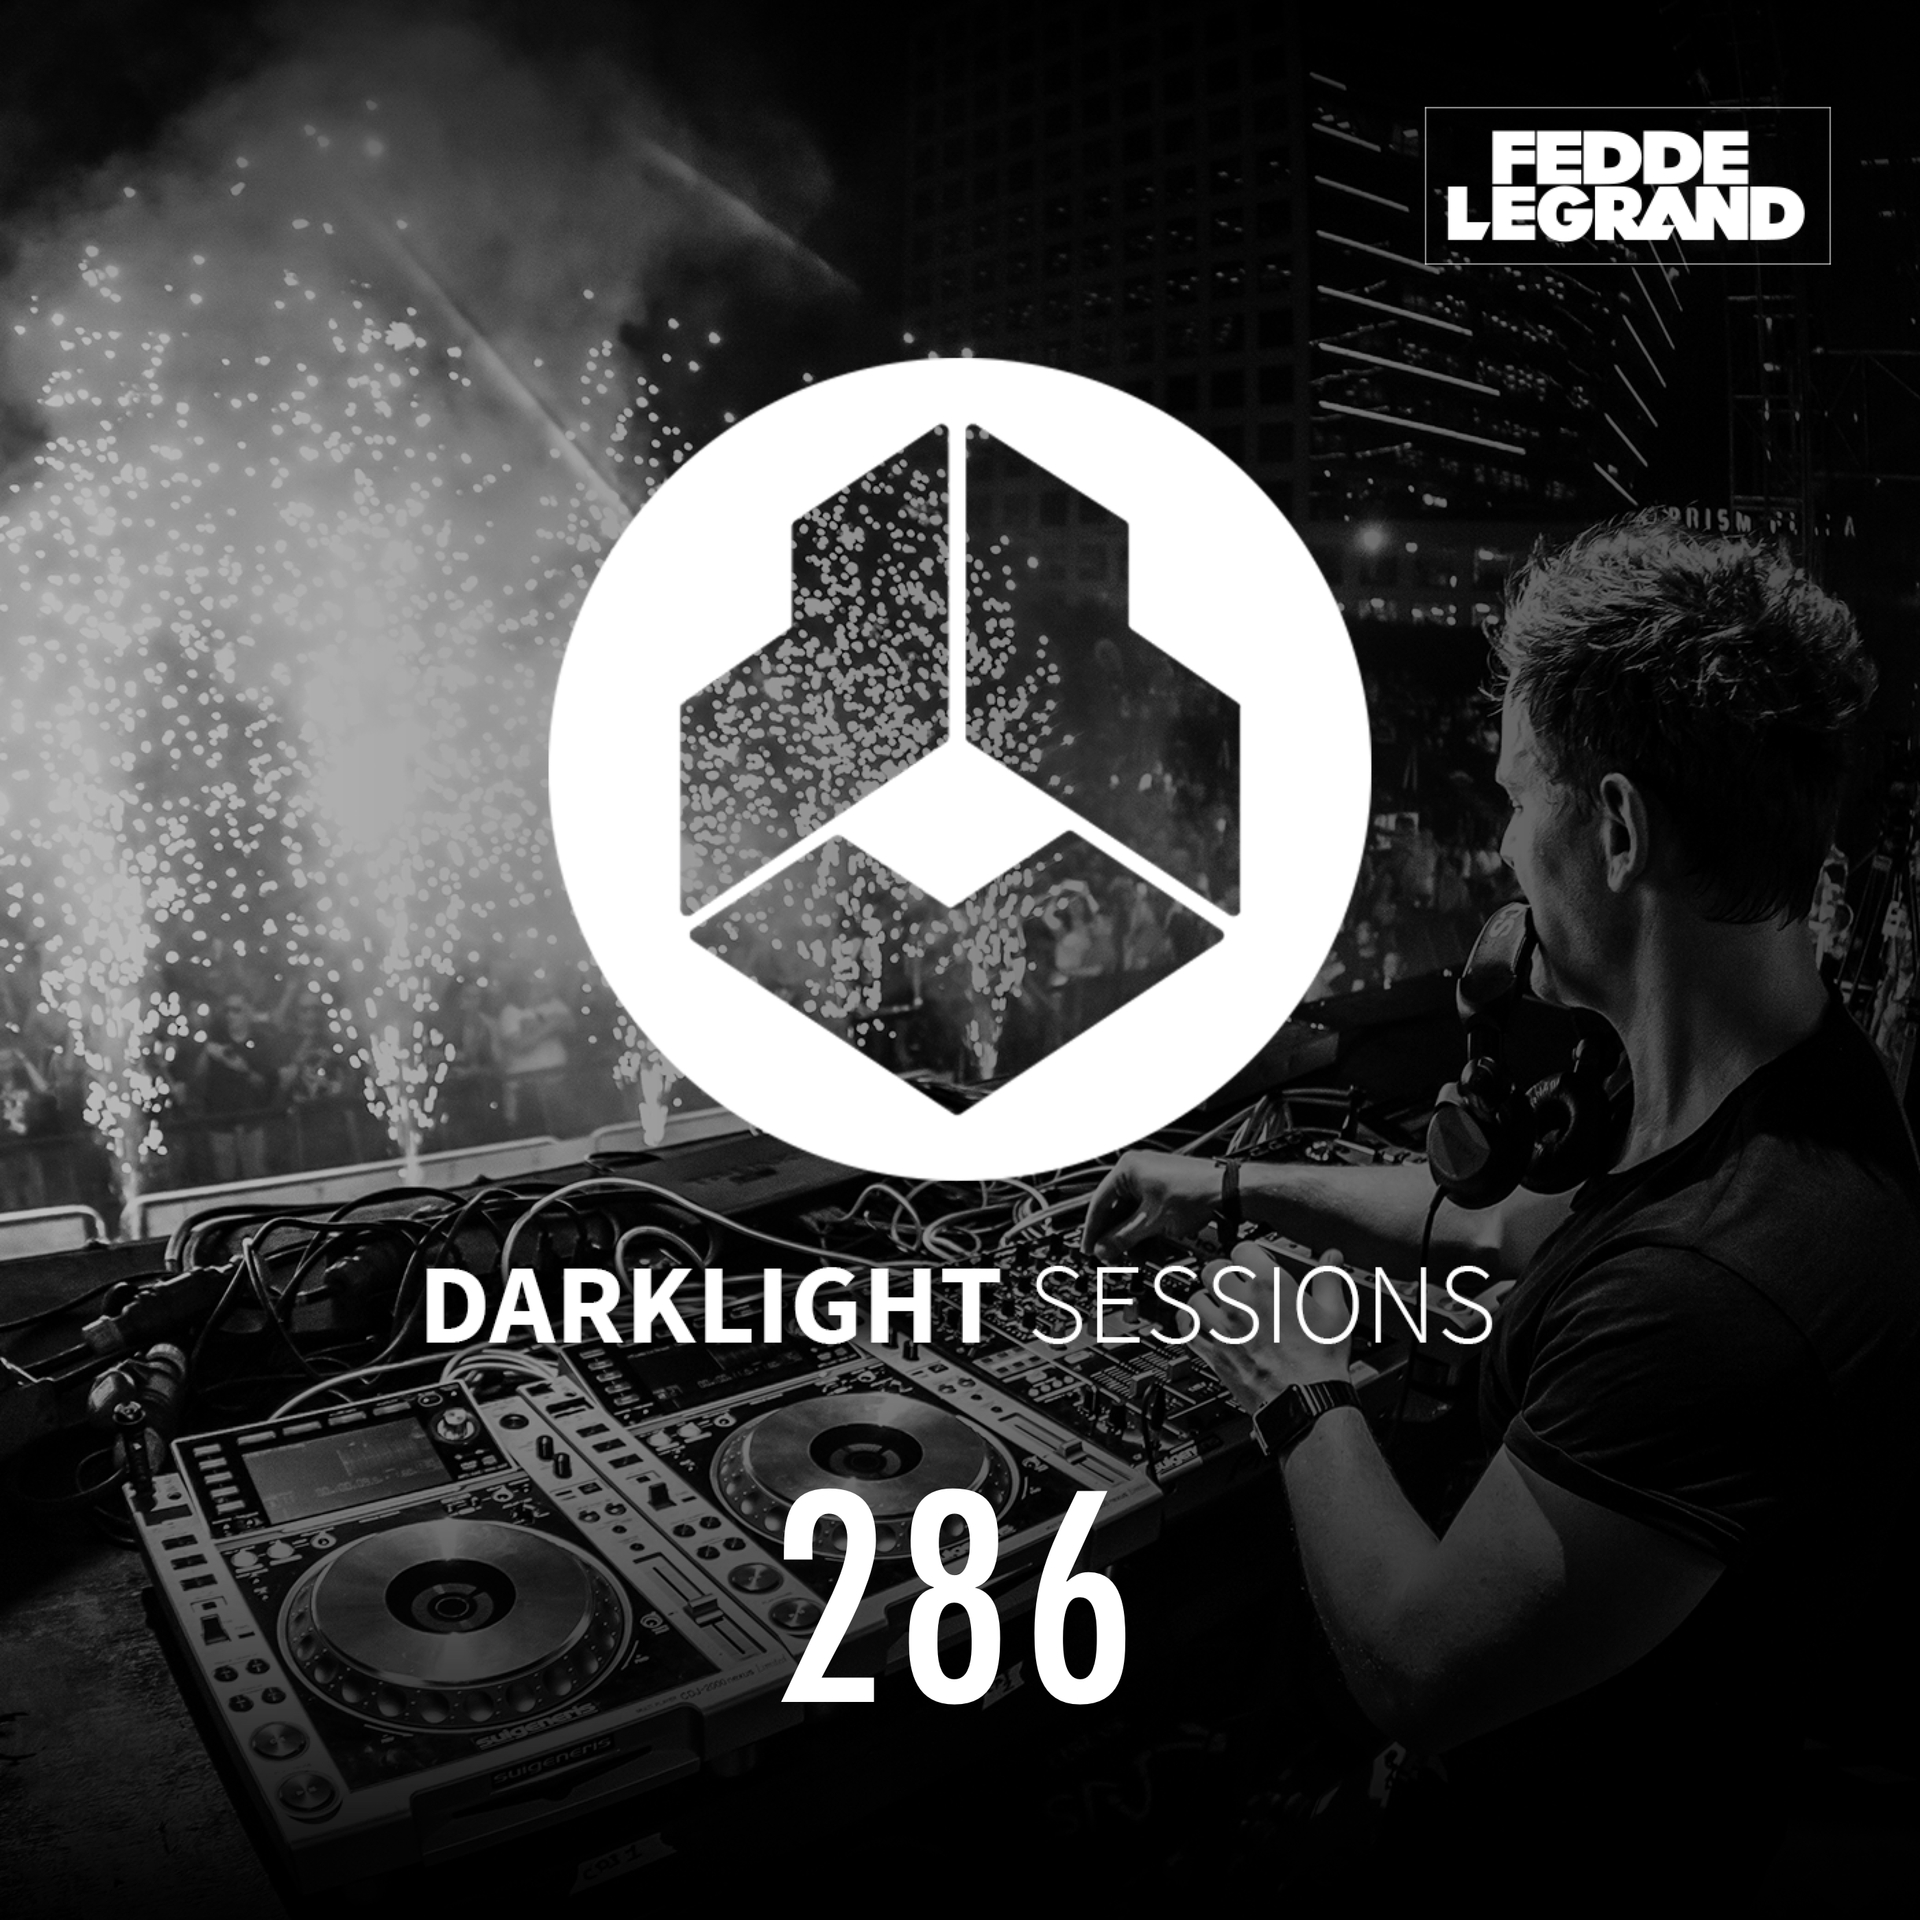 Darklight Sessions 286